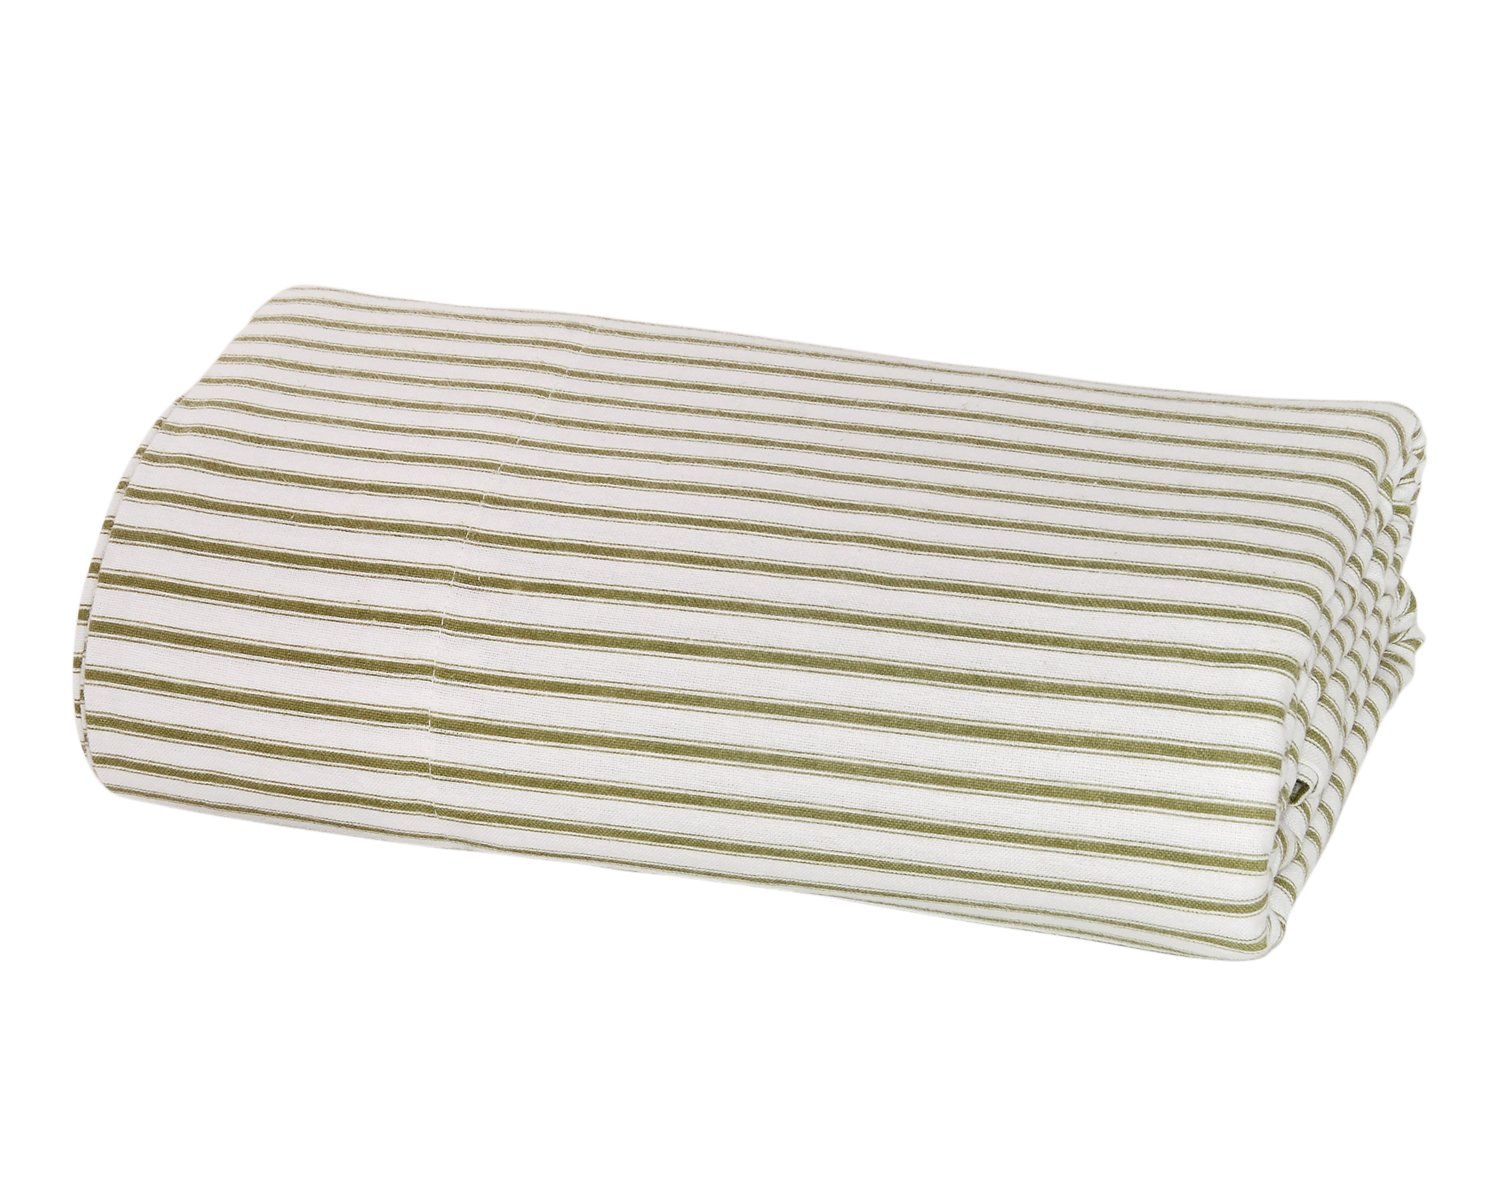 Full, Sage Stripe DELANNA Flannel Flat Sheet 100/% Brushed Cotton 1 Top Sheet Only 80x96